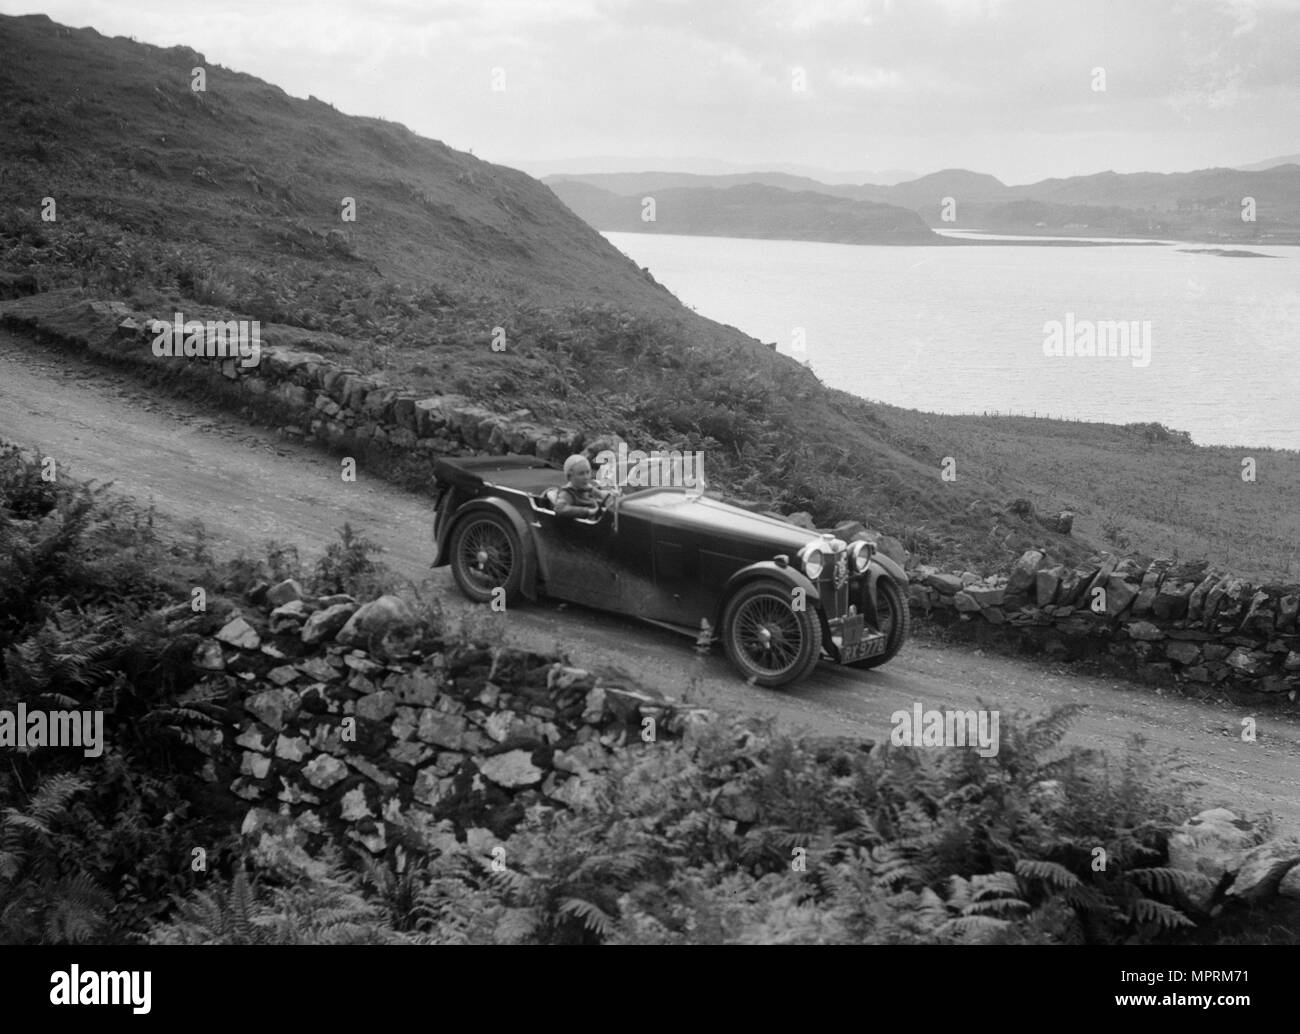 MG Magna of Kitty Brunell competing in the RSAC Scottish Rally, 1932. Artist: Bill Brunell. - Stock Image